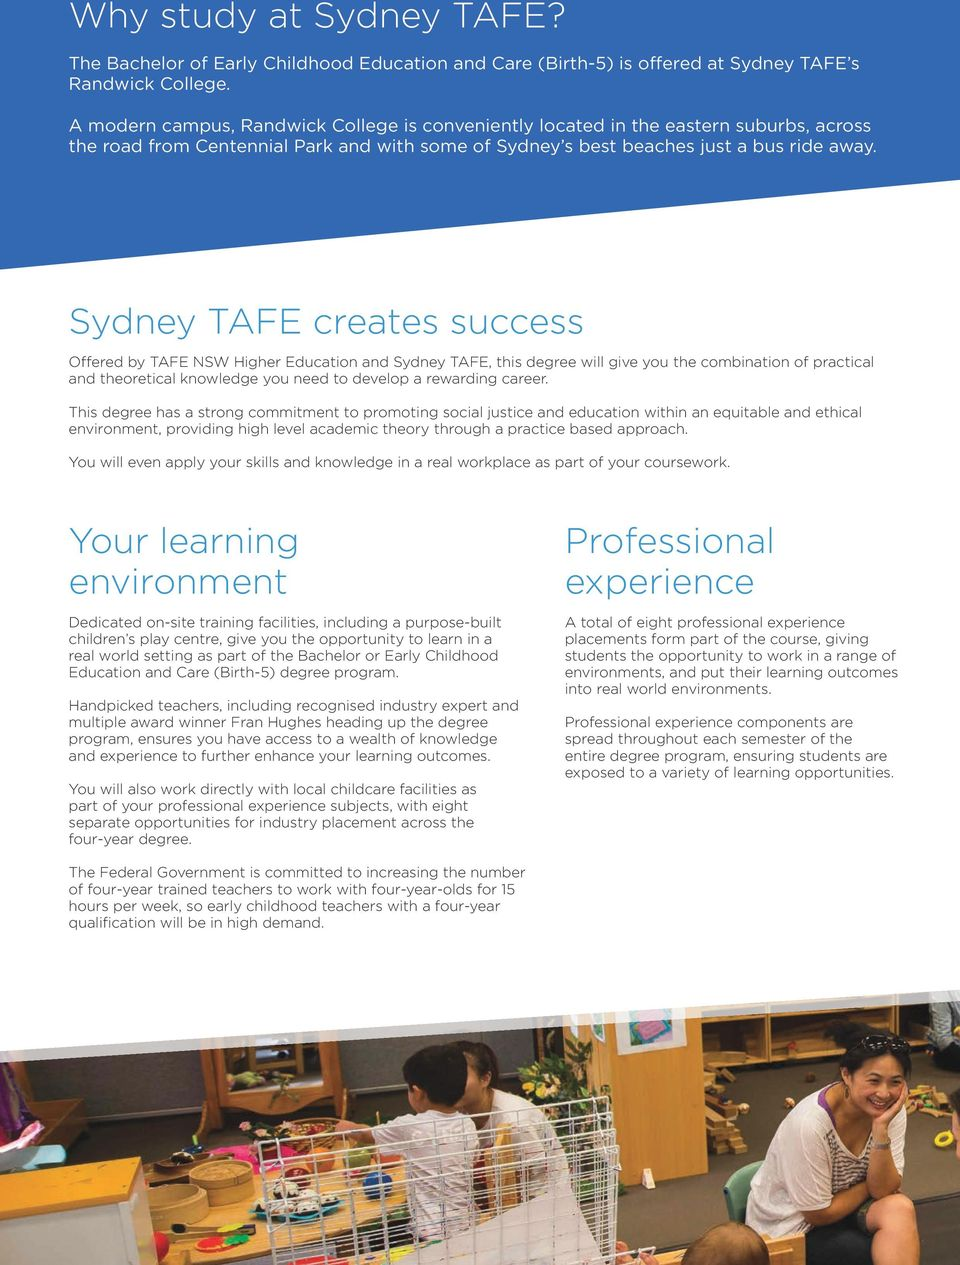 Sydney TAFE creates success Offered by TAFE NSW Higher Education and Sydney TAFE, this degree will give you the combination of practical and theoretical knowledge you need to develop a rewarding